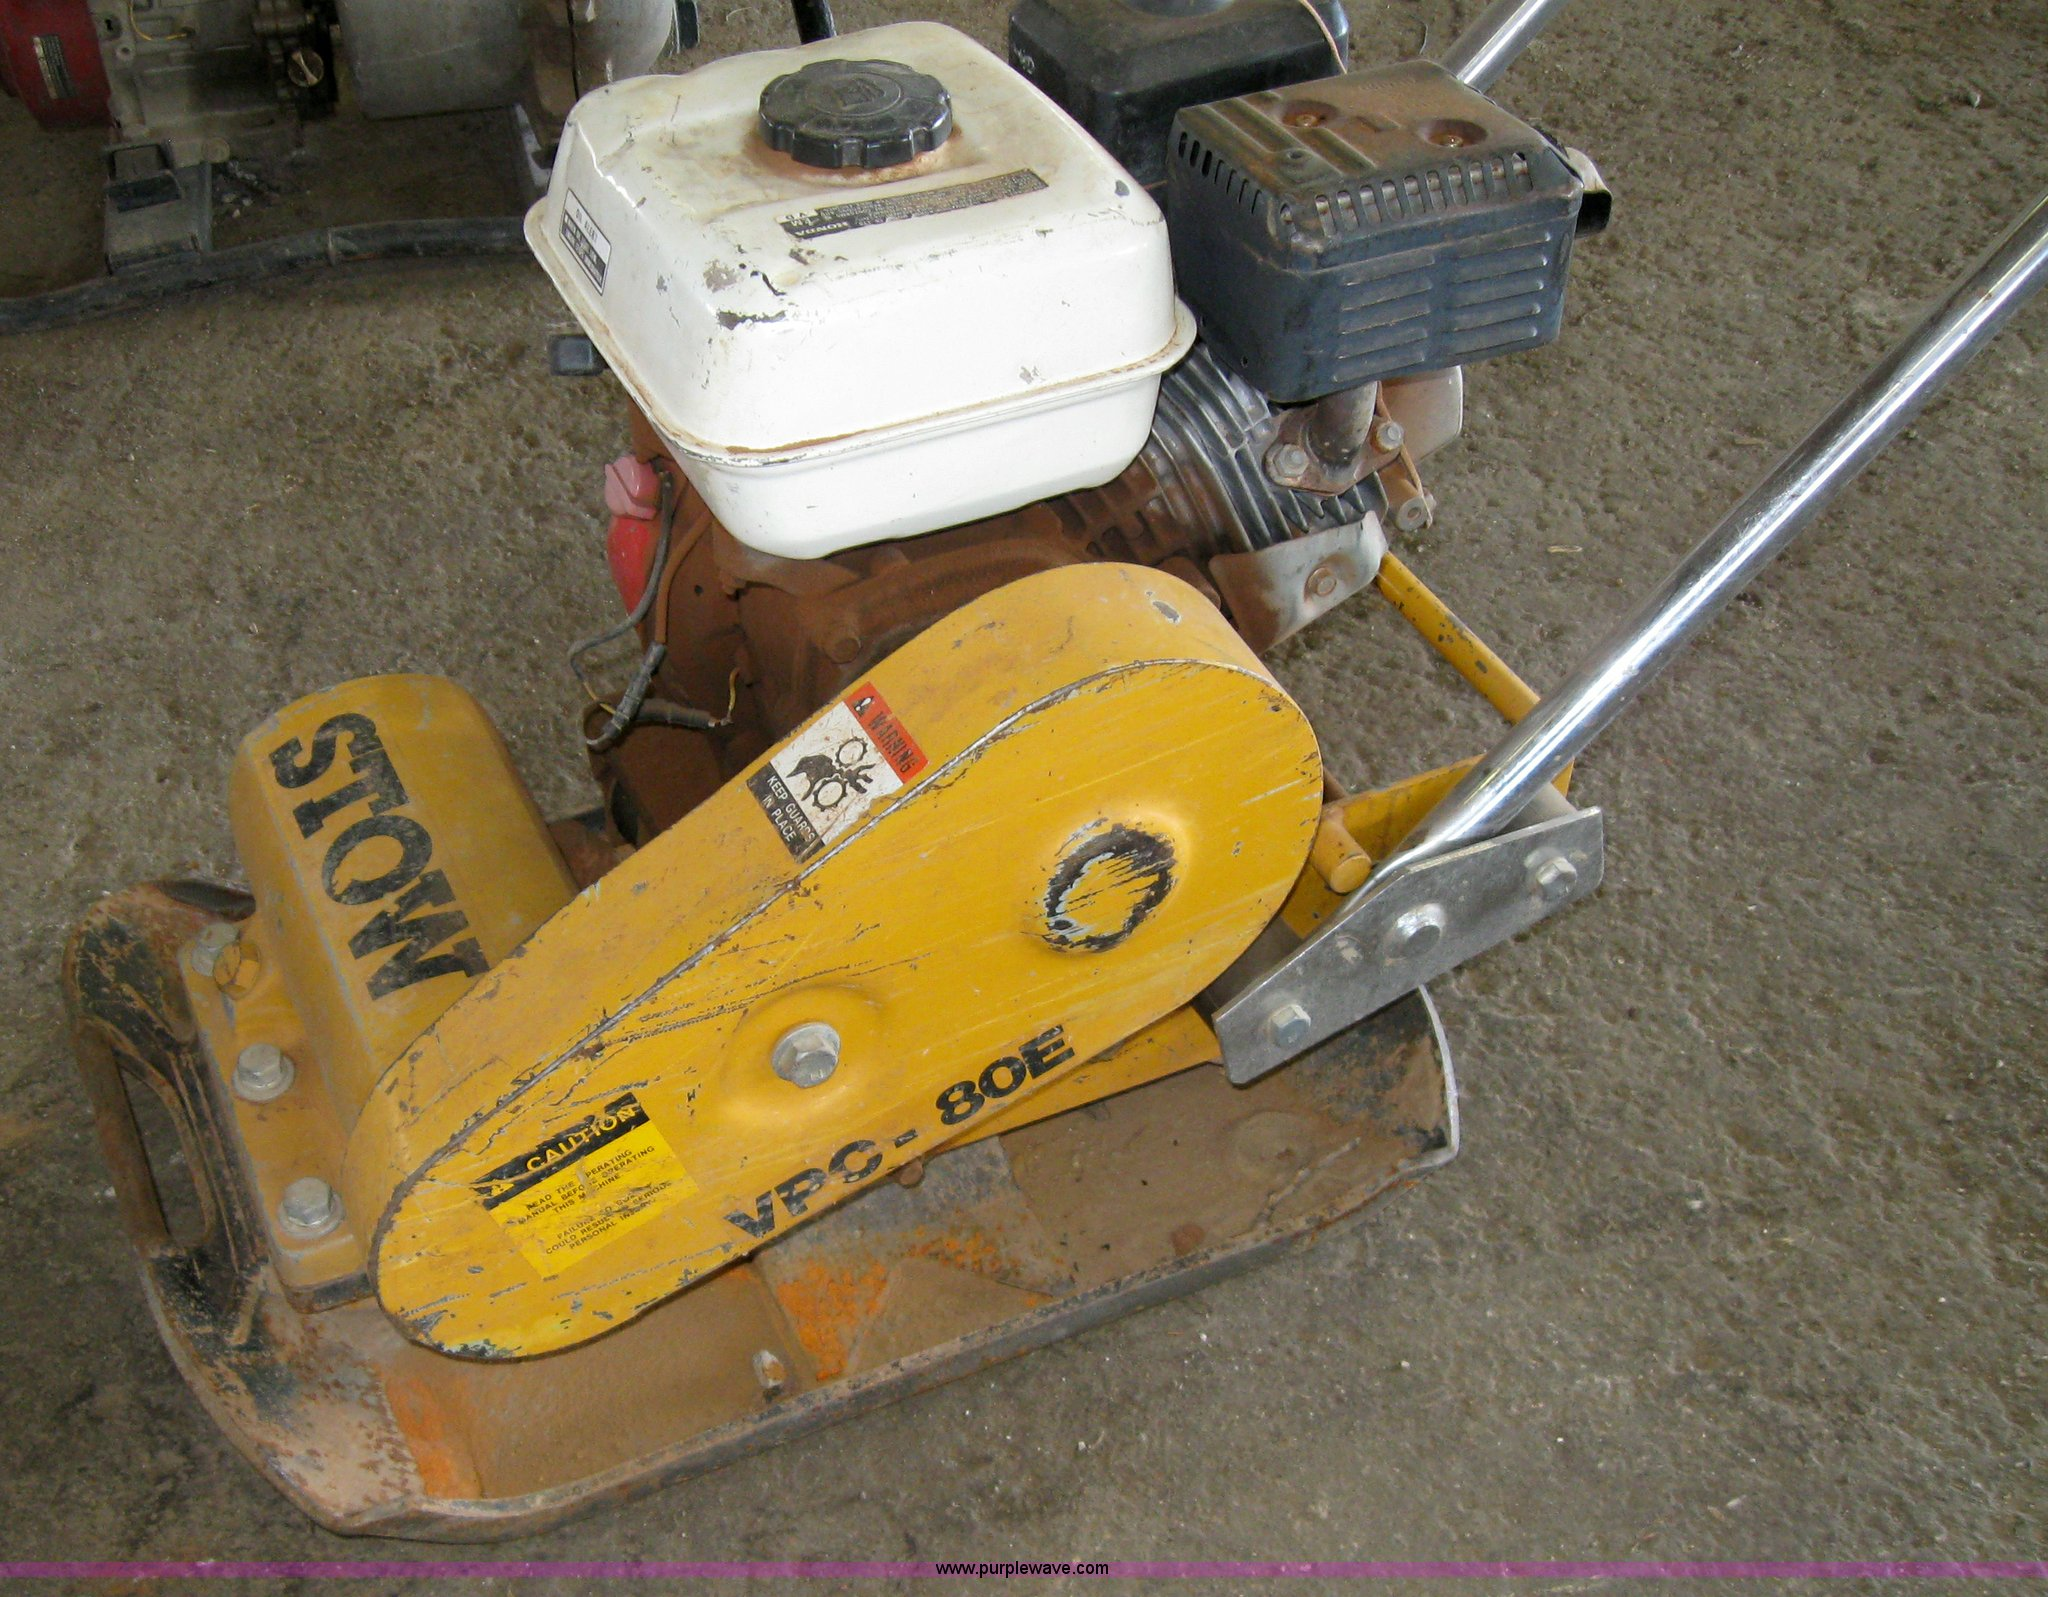 Stow VPC-80E plate compactor | Item 4854 | SOLD! March 10 LM